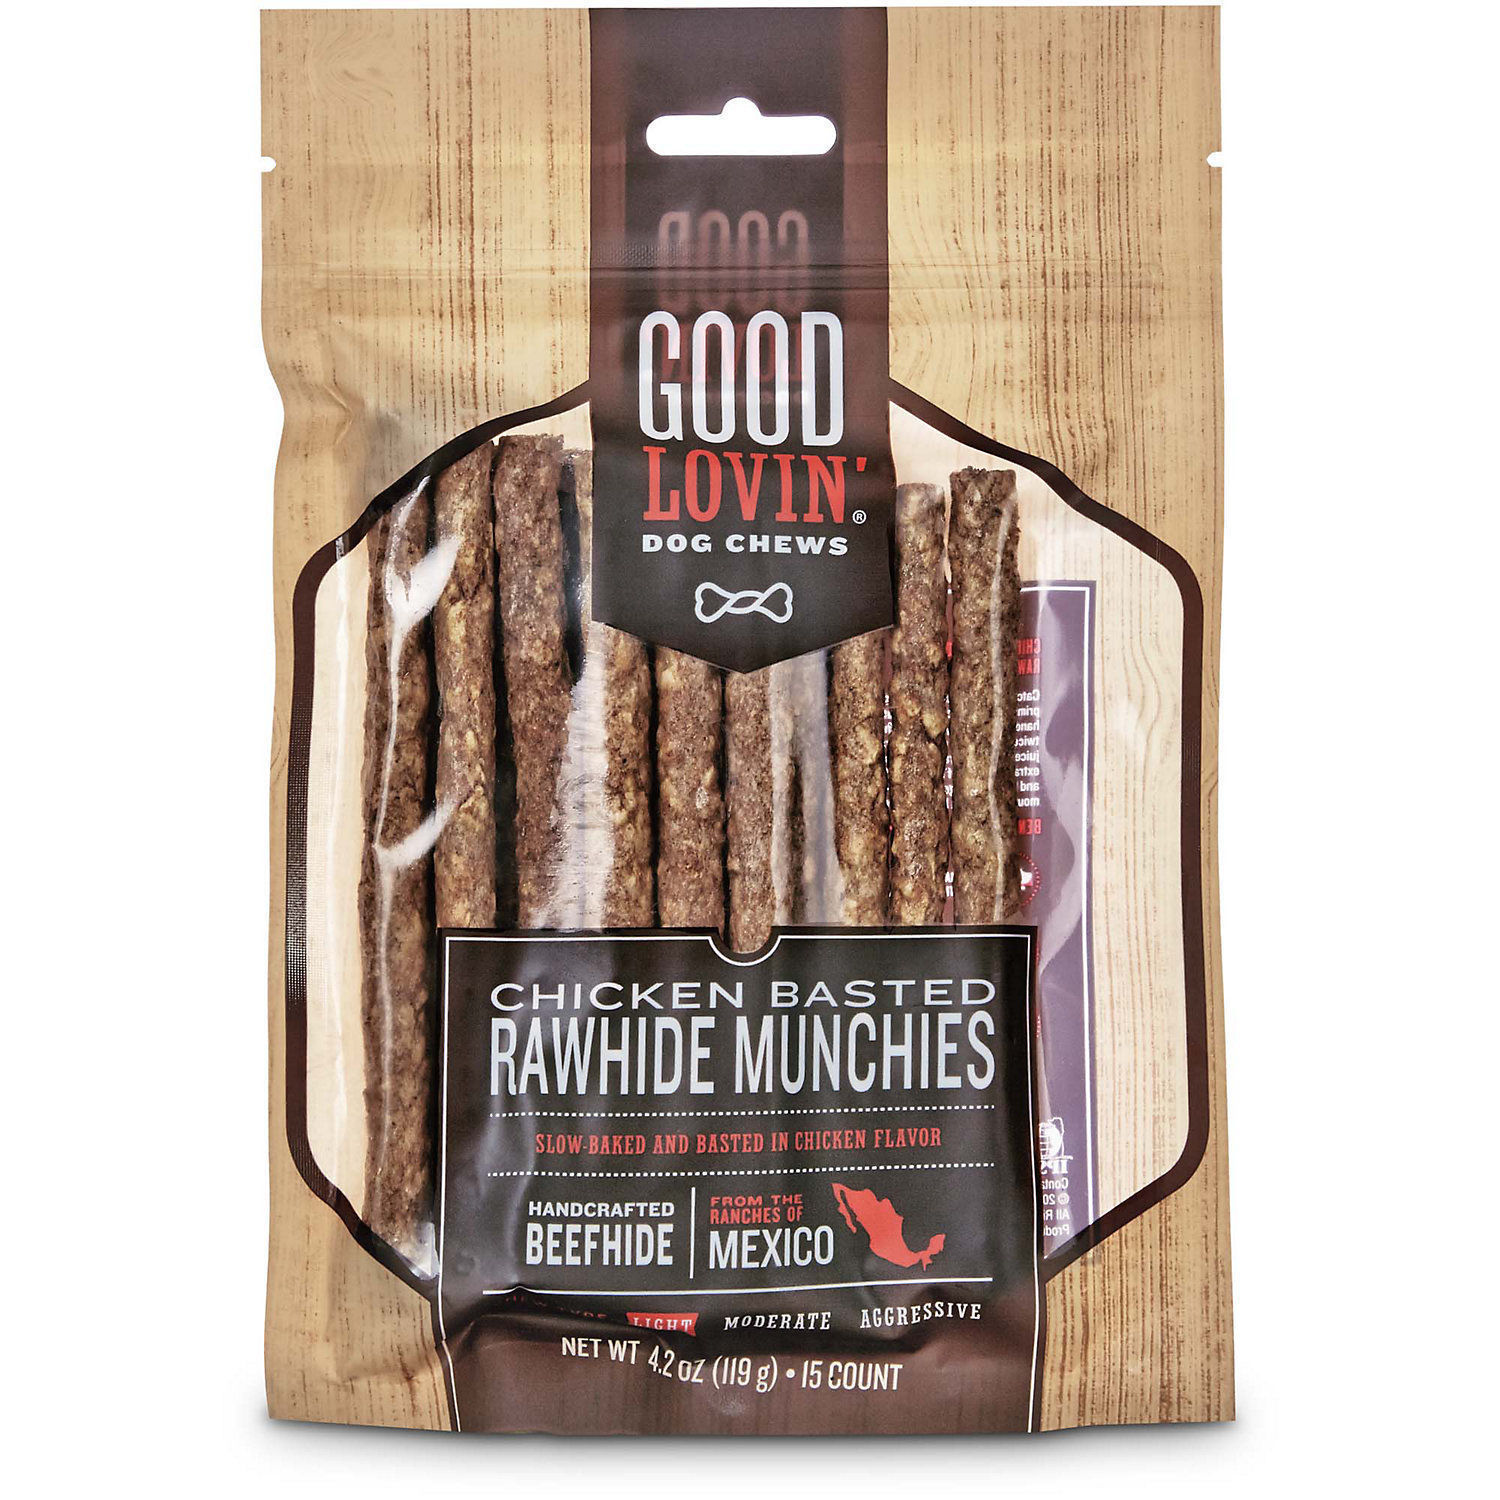 Good Lovin' Chicken Basted Rawhide Munchie Dog Chews (15 CT)